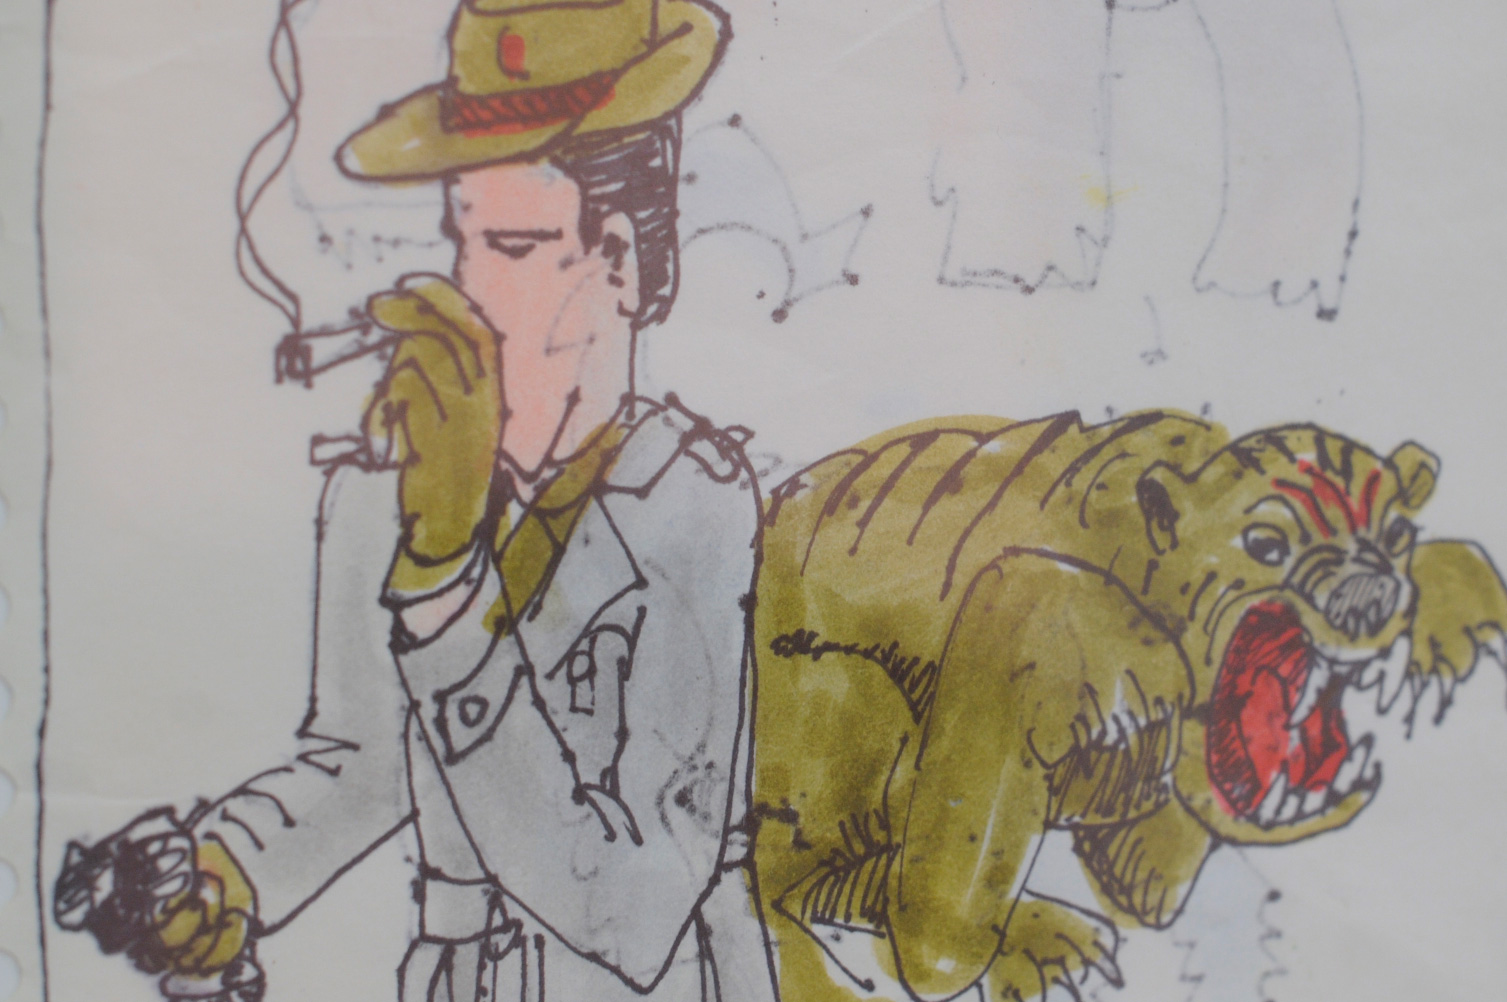 smoking cowboy with dog illustration